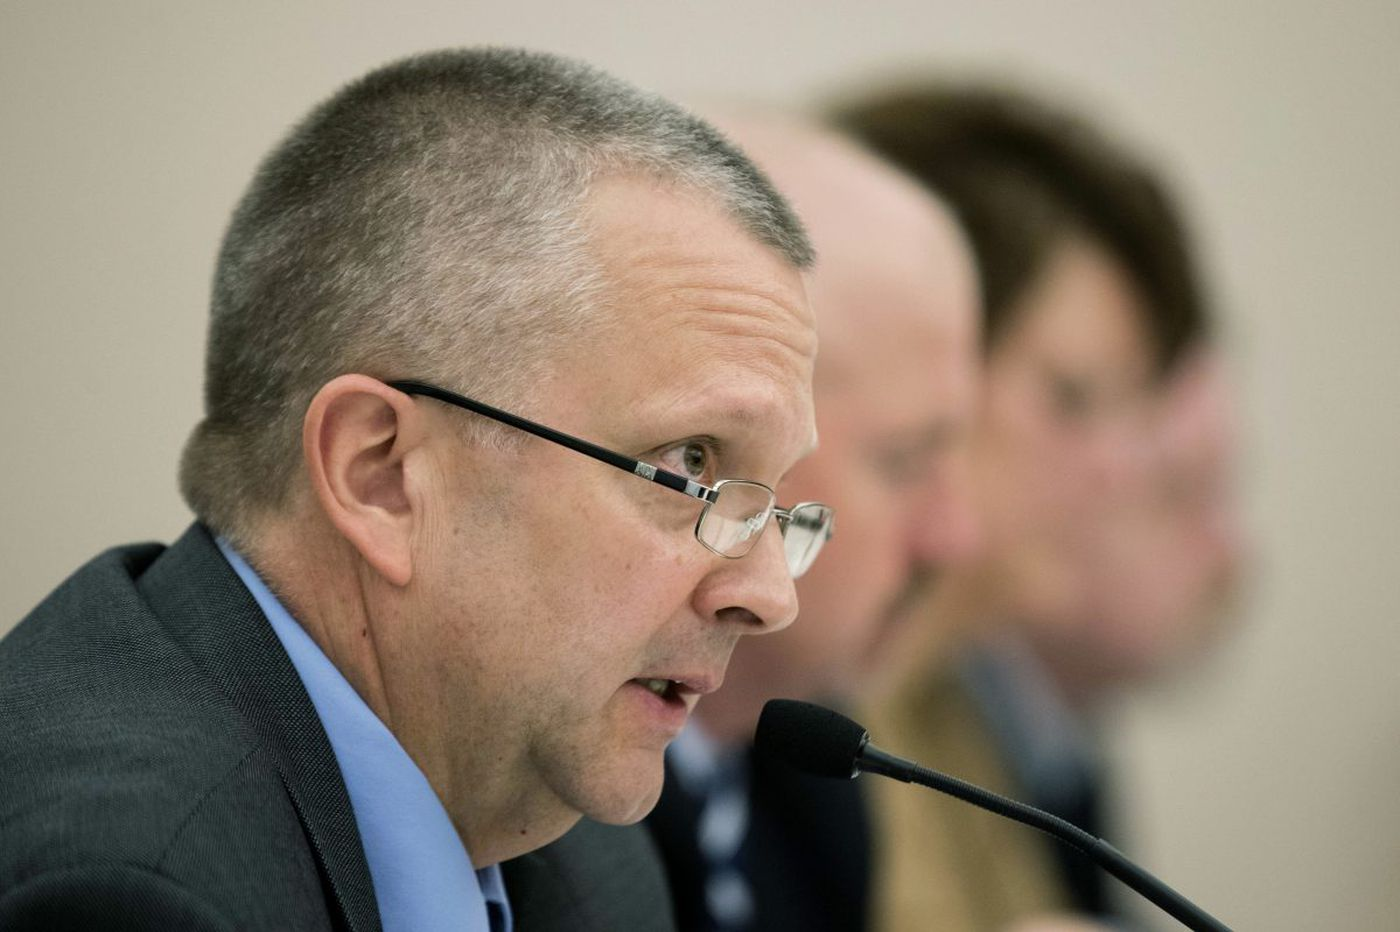 Pa. Gov. Wolf asks House leaders to demote Daryl Metcalfe for antigay talk